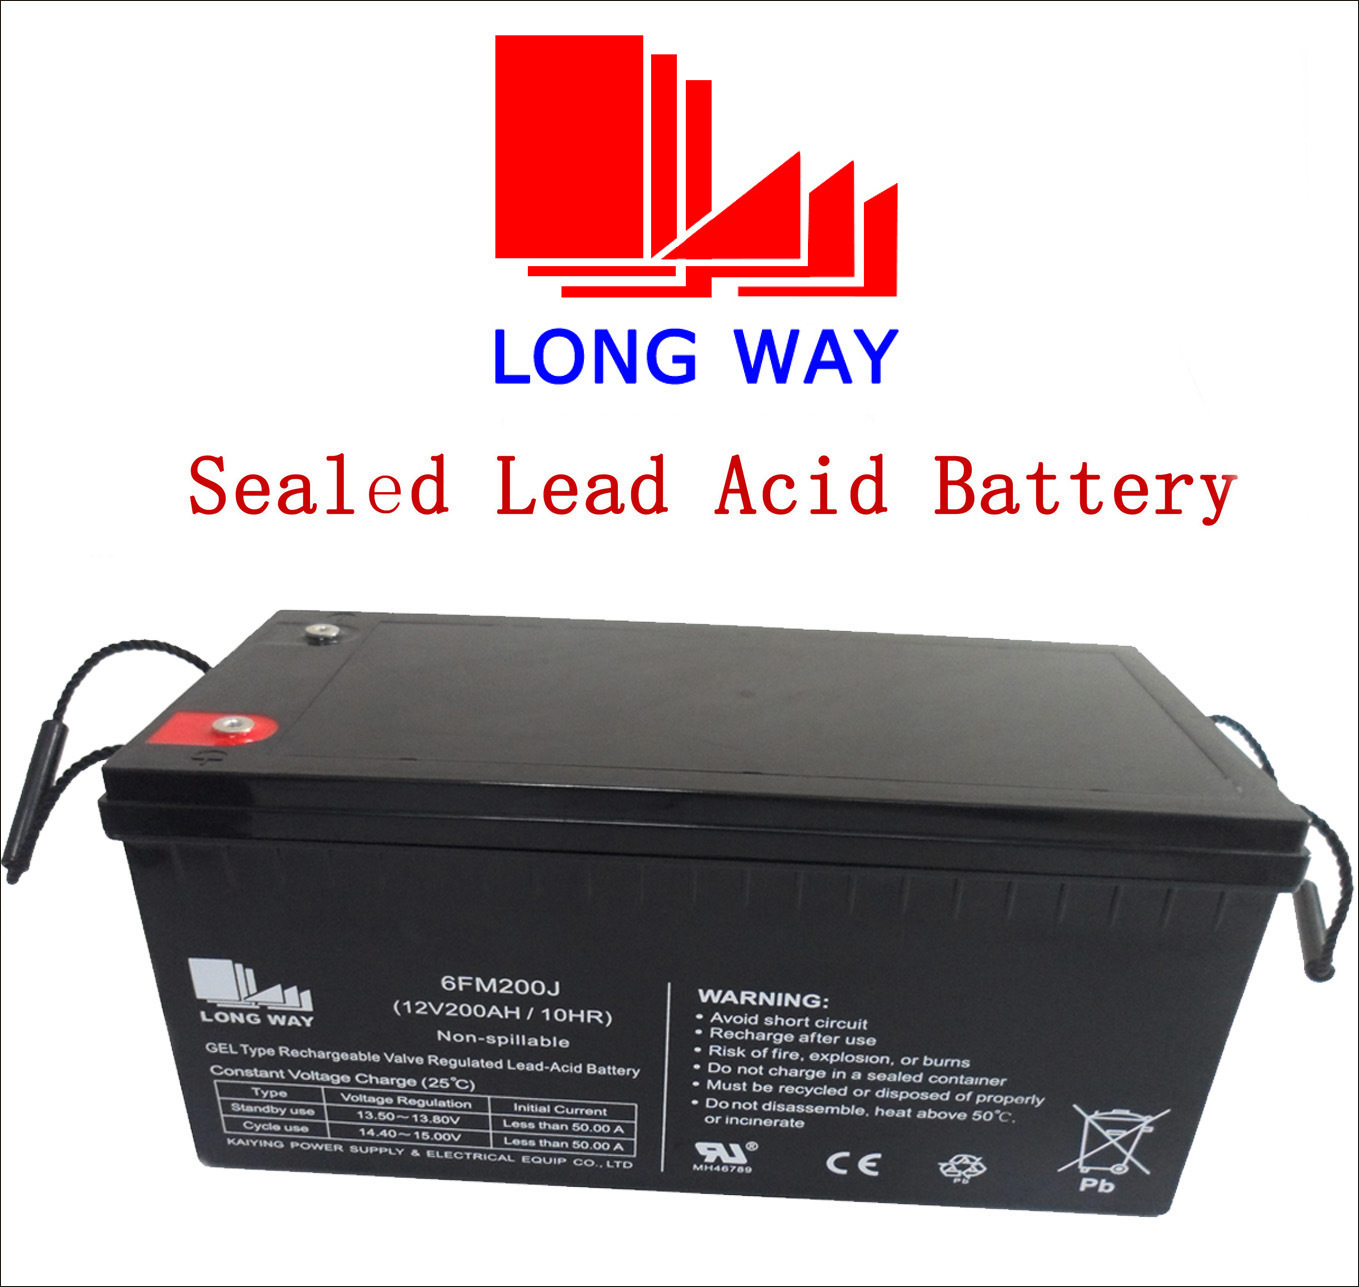 12V200ah Cable TV Gel Sealed Lead Acid Battery